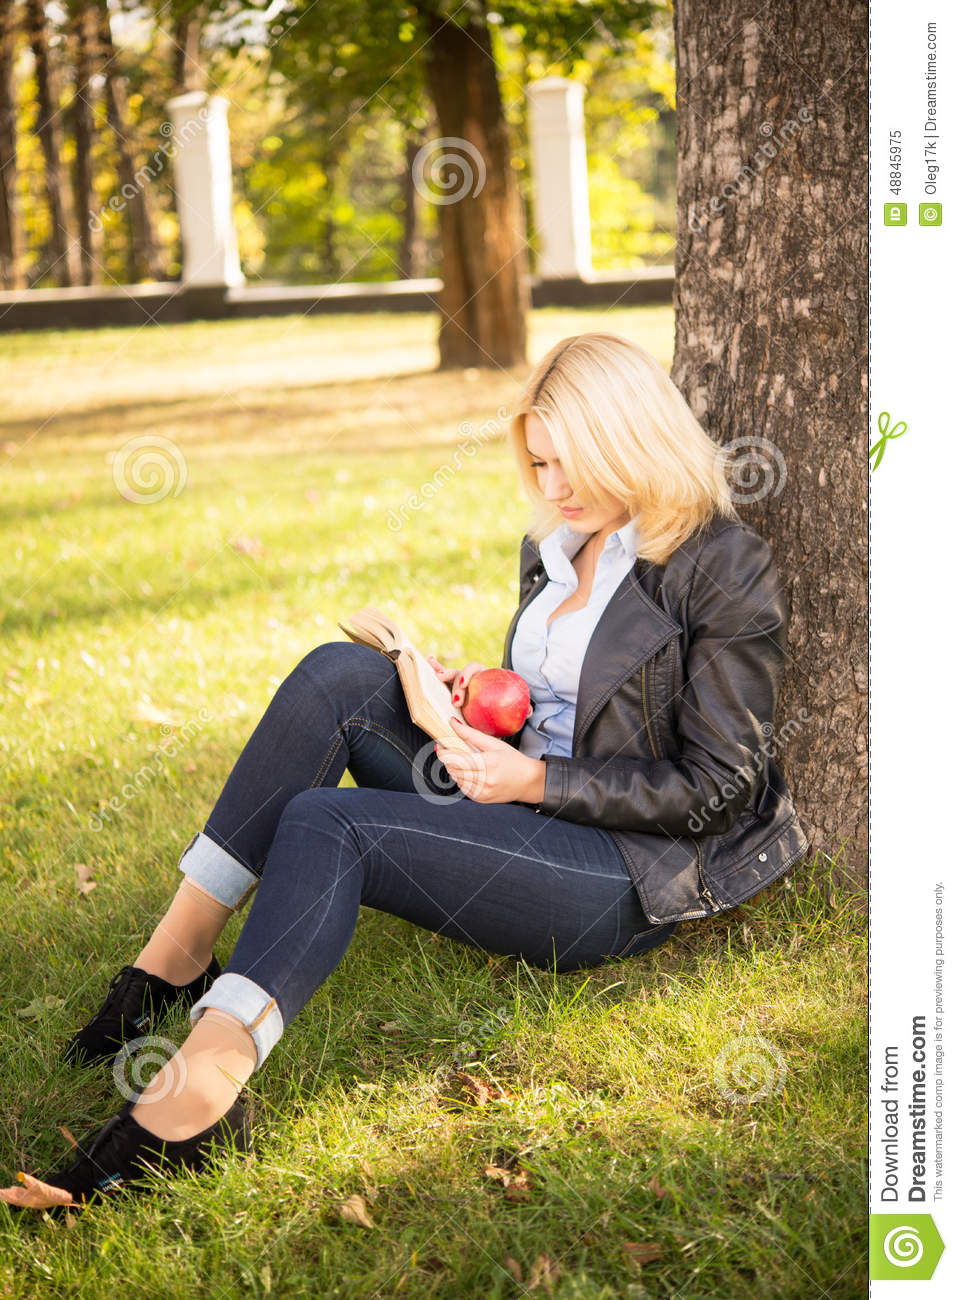 Beautiful girl sitting under a tree and reading a book